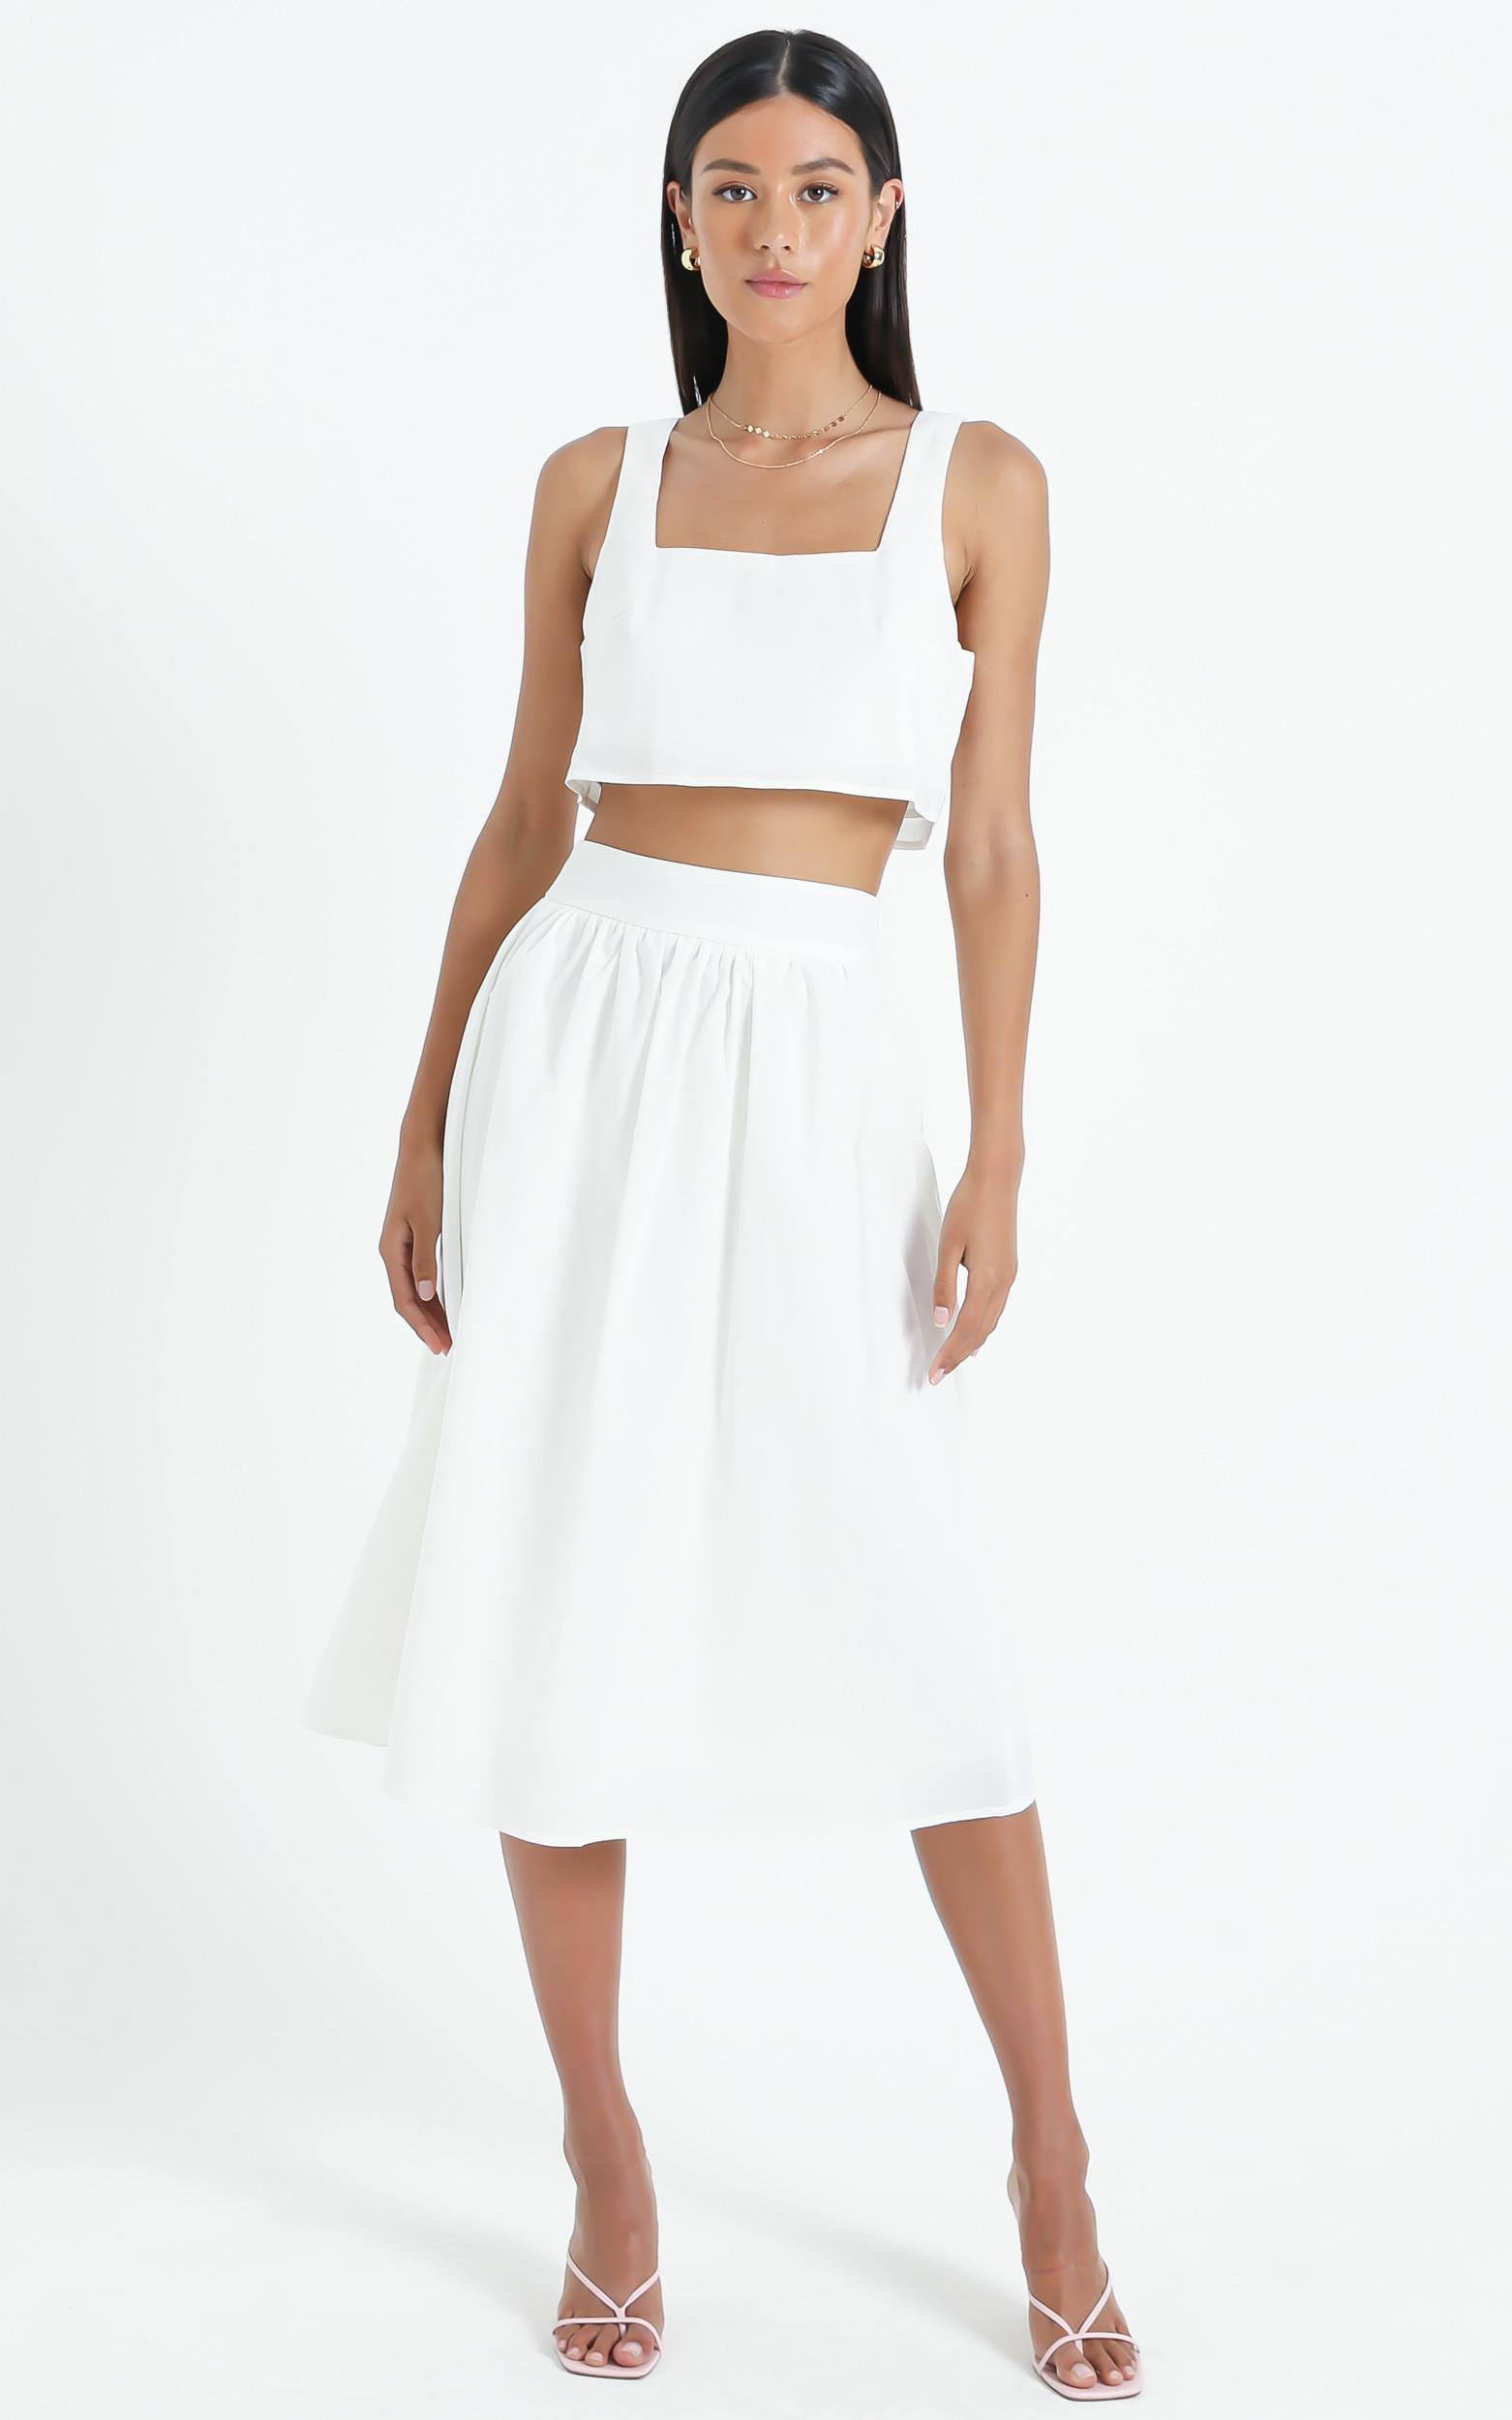 Razzoli Two Piece Set in White - 6 (XS), White, hi-res image number null